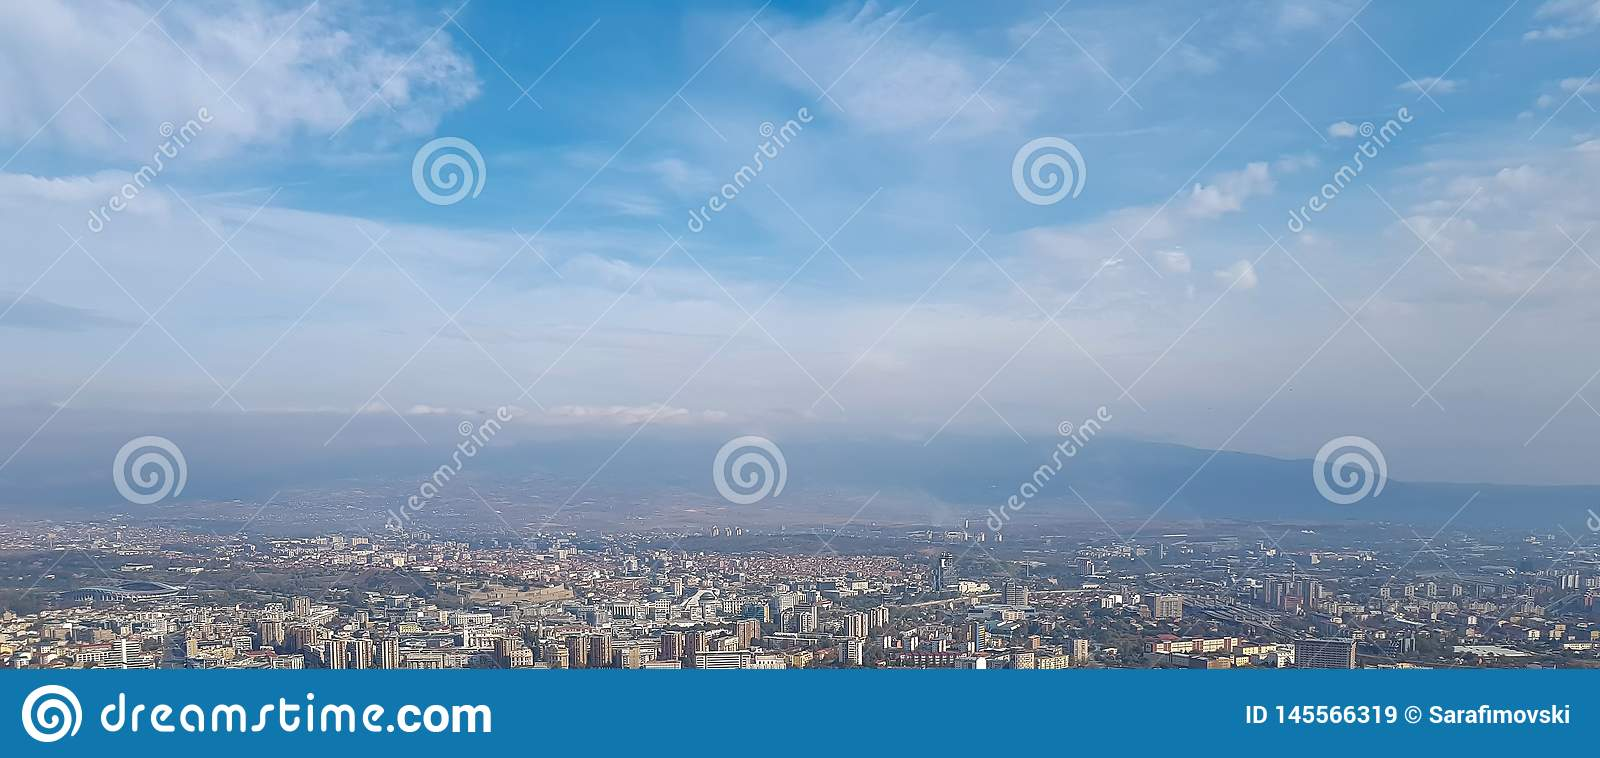 Panoramic skyline and buildings with blue sky and white clouds.